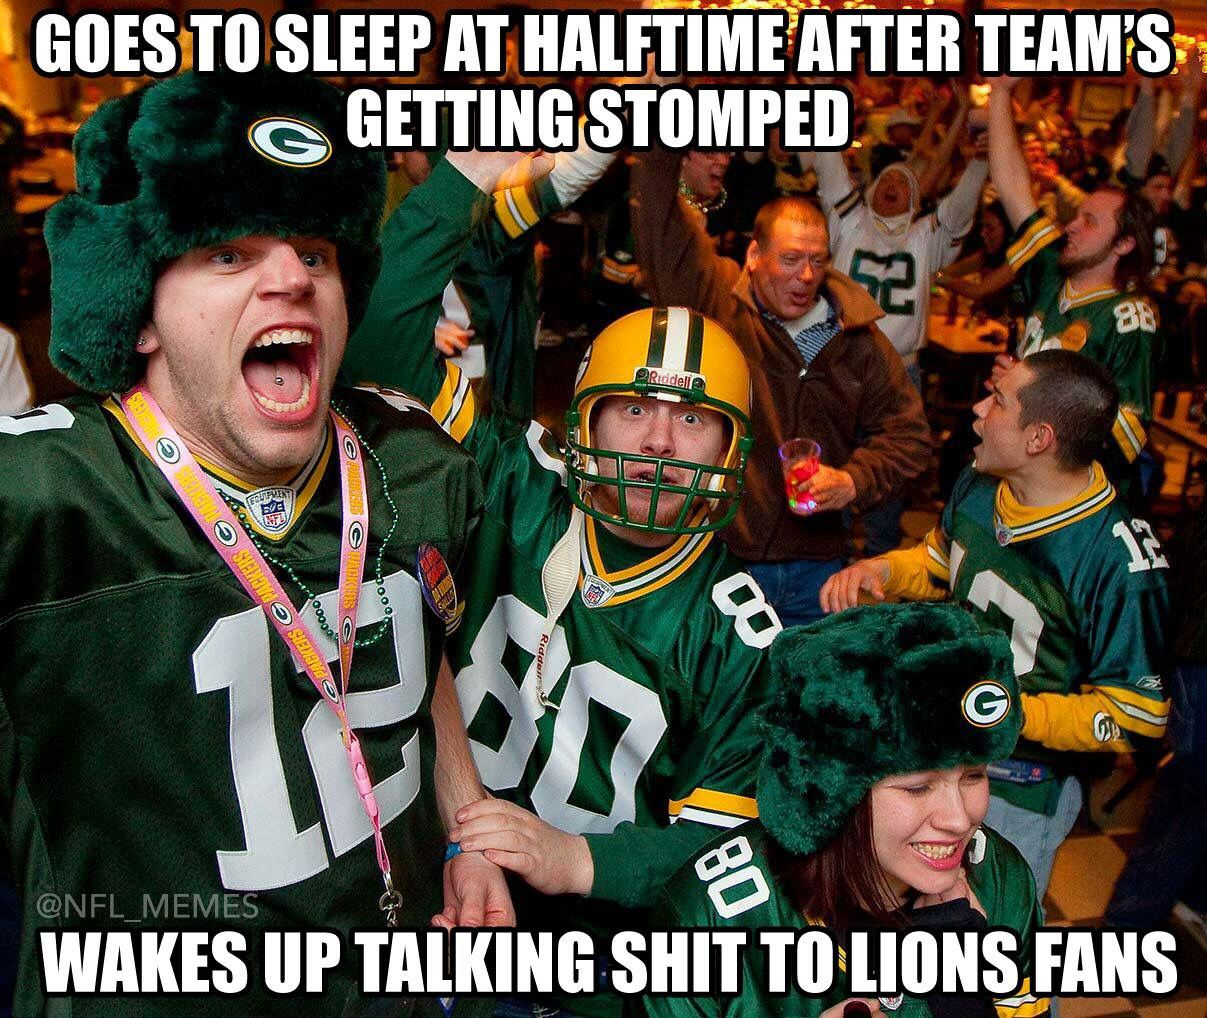 Packers Fans Lol Haha Funny Nfl Memes Go To Sleep